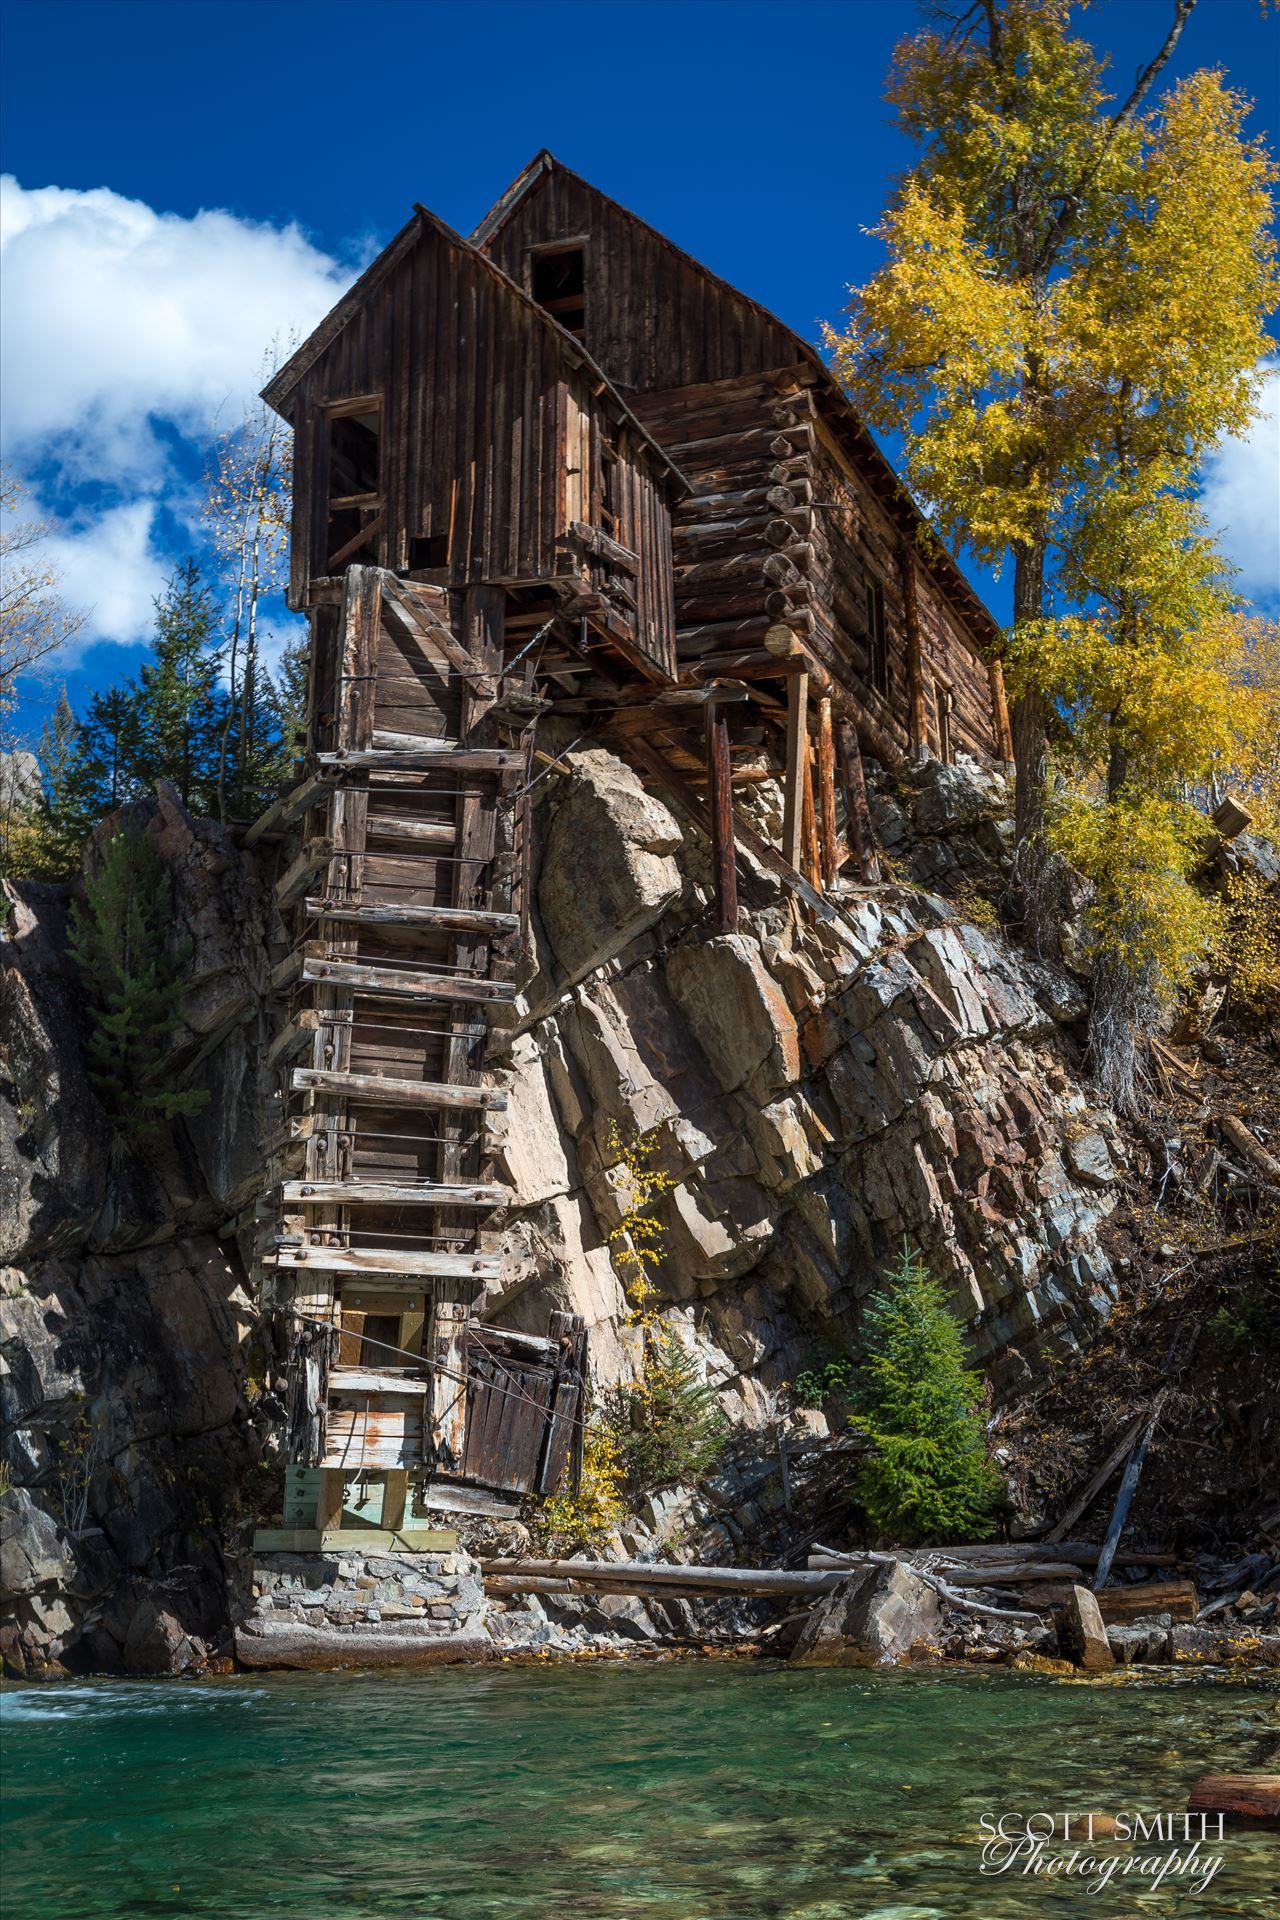 Crystal Mill, Colorado 05 - The Crystal Mill, or the Old Mill is an 1892 wooden powerhouse located on an outcrop above the Crystal River in Crystal, Colorado by D Scott Smith